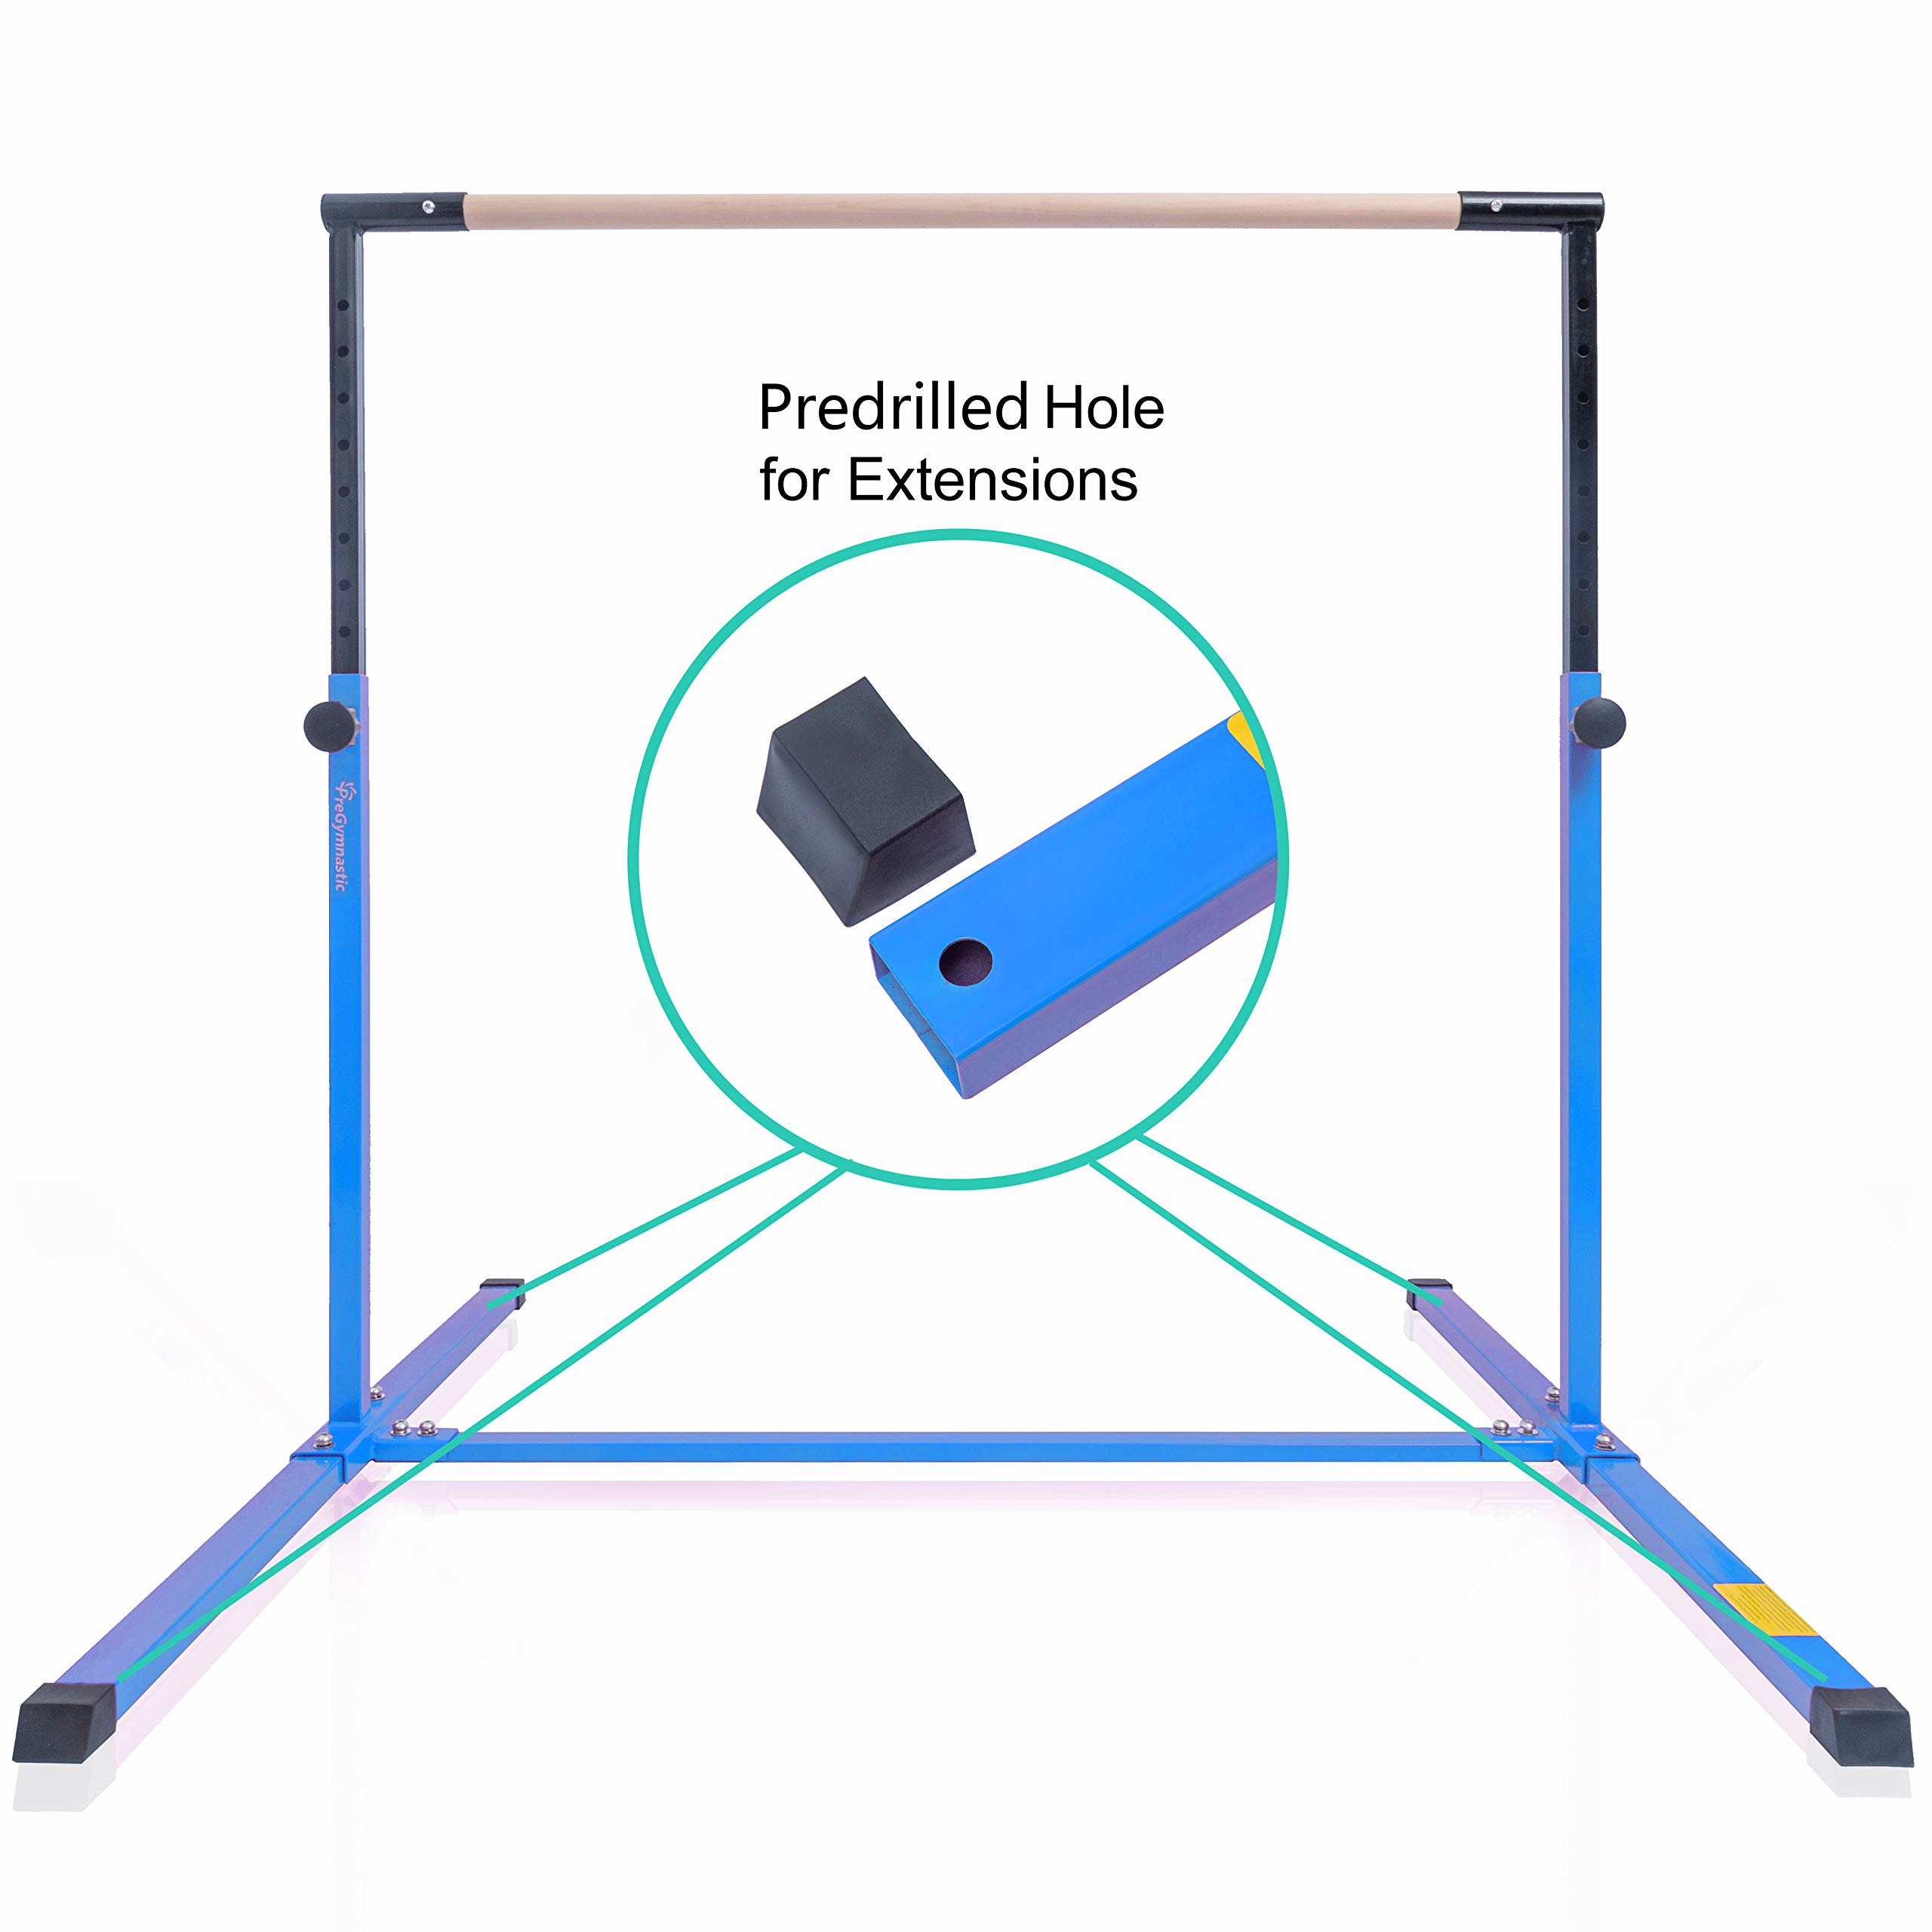 PreGymnastic Expandable & Adjustable(3'-5') Kip Bar with Predrilled Hole for Extensions/Junior Training Bar/Horizontal Training Bar with Bonus Shinning Sticker Inside (Light Blue)